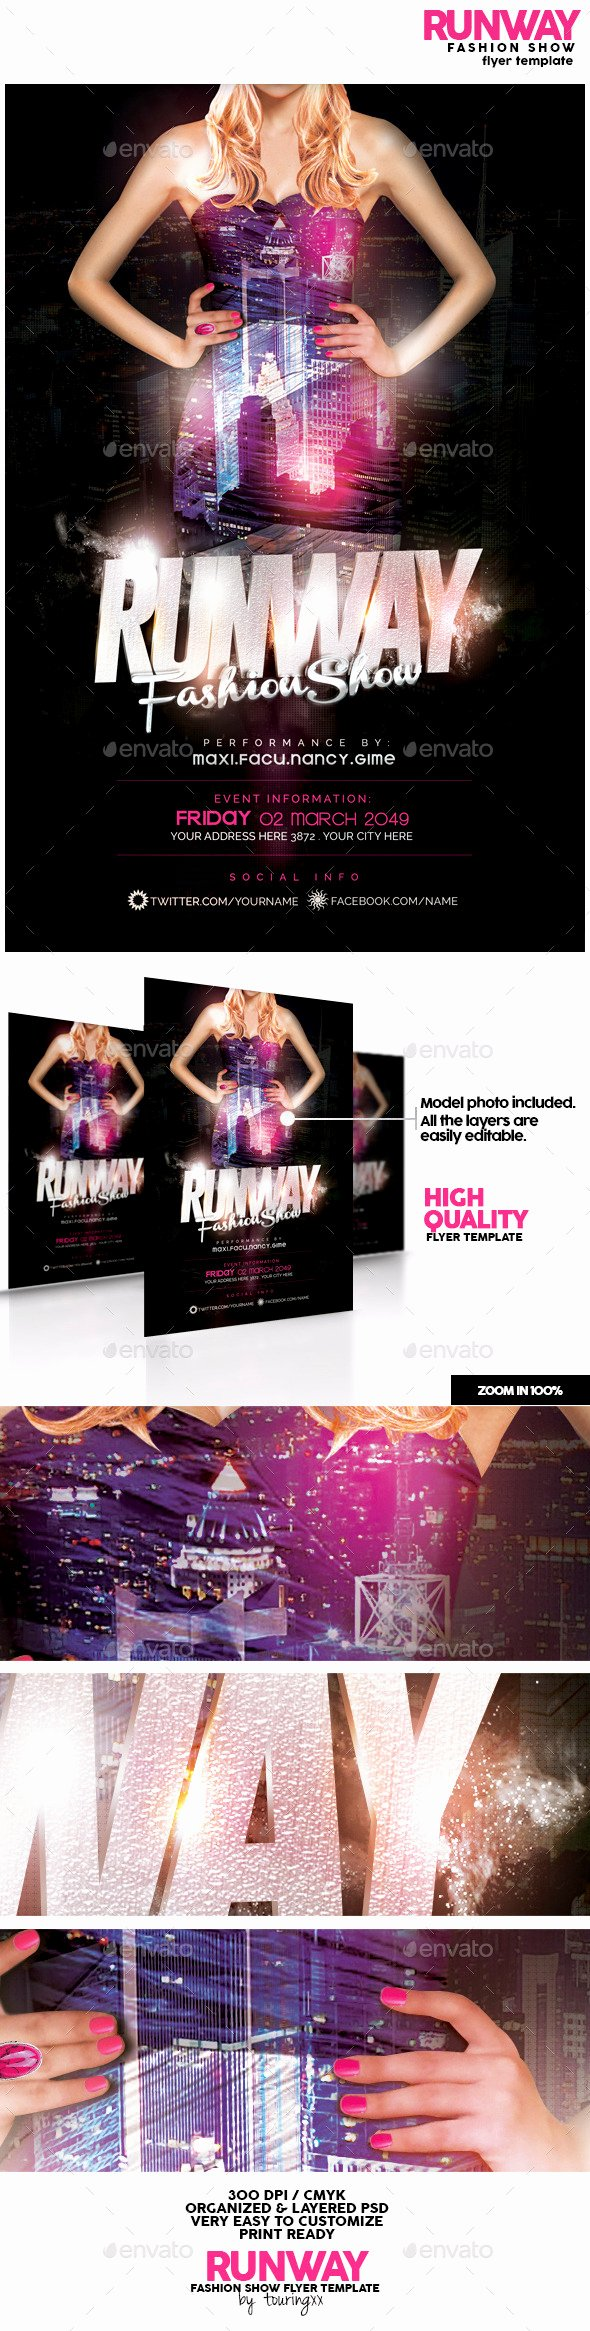 Runway Fashion Show Flyer Template by touringxx